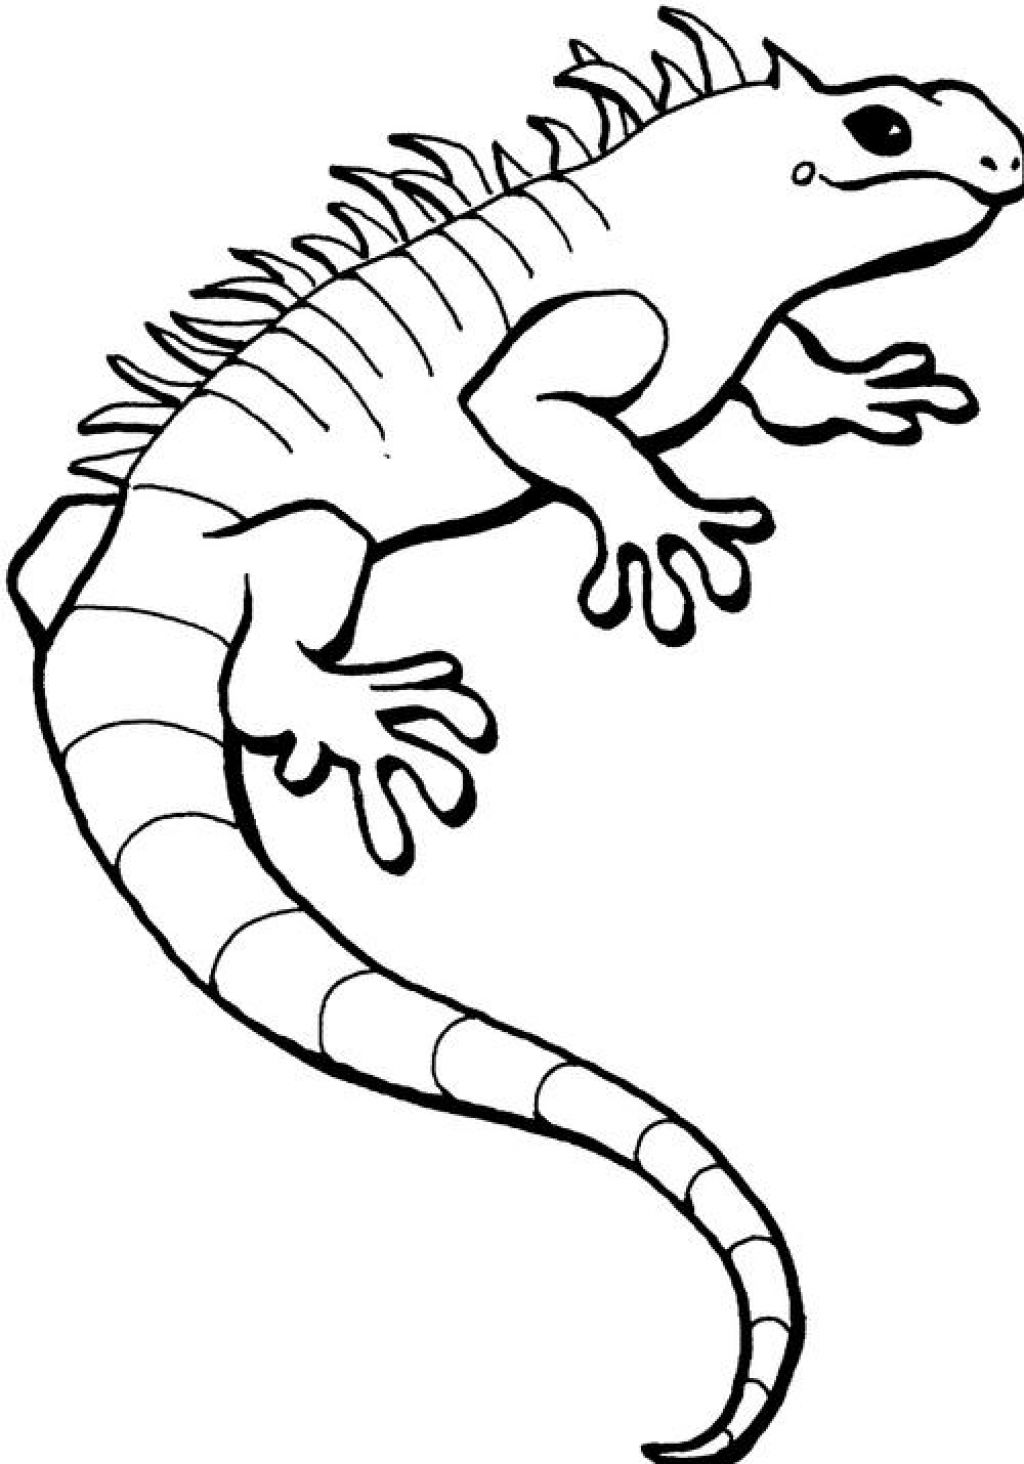 Coloring page iguana